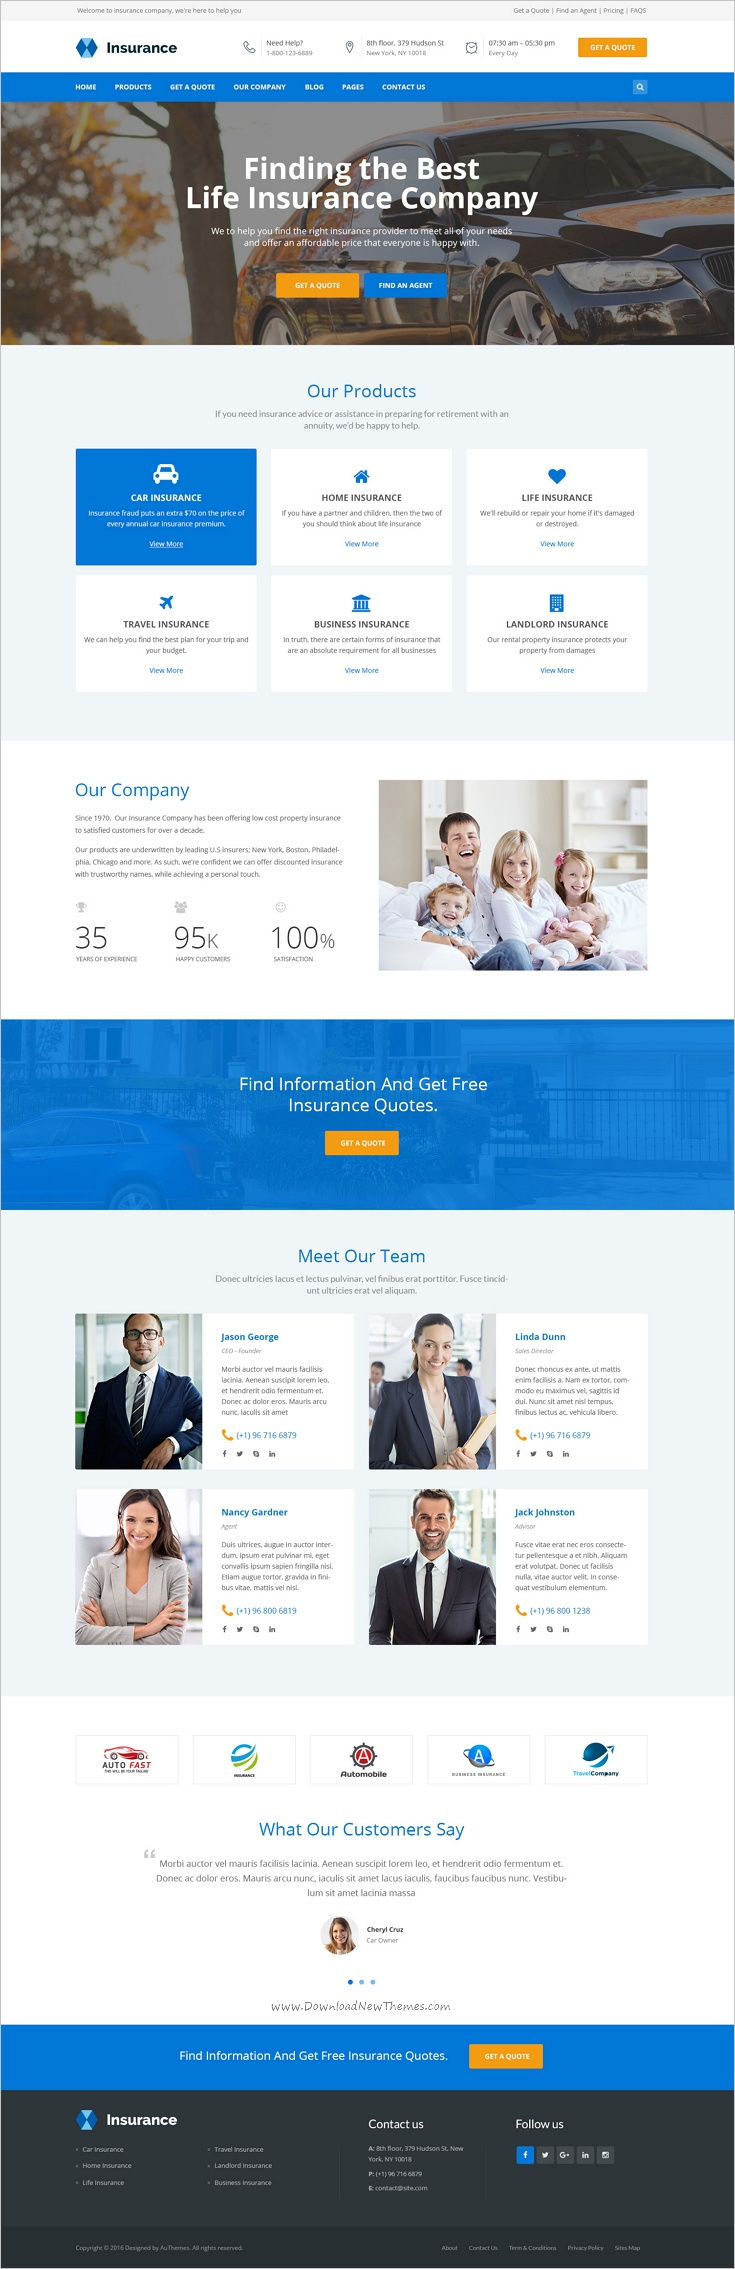 Pin By Peter Gal On Insoiracio Best Website Templates Insurance Website Psd Templates